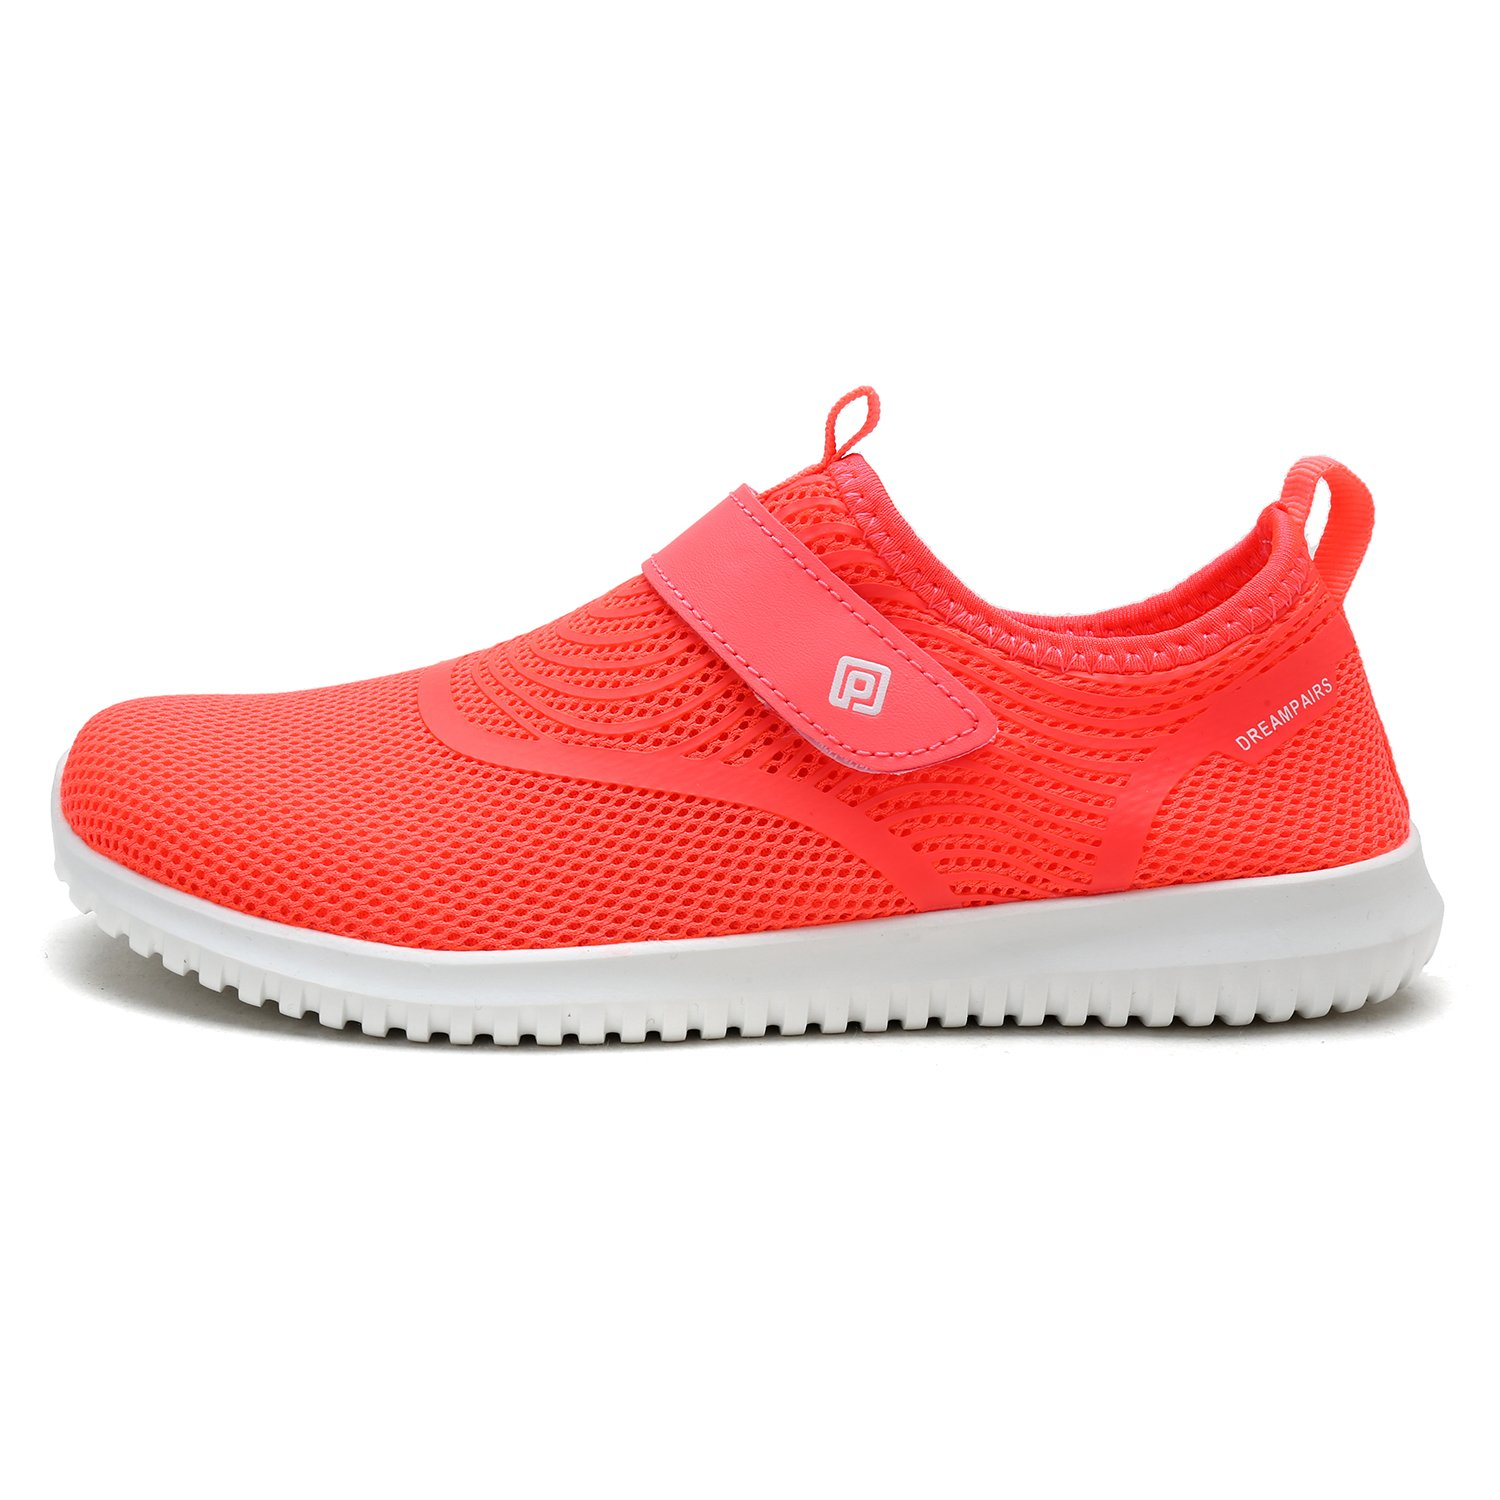 DREAM PAIRS Quick-Dry Water Shoes Sports Walking Casual Sneakers for Women B0788B7WG8 11 M US|Coral